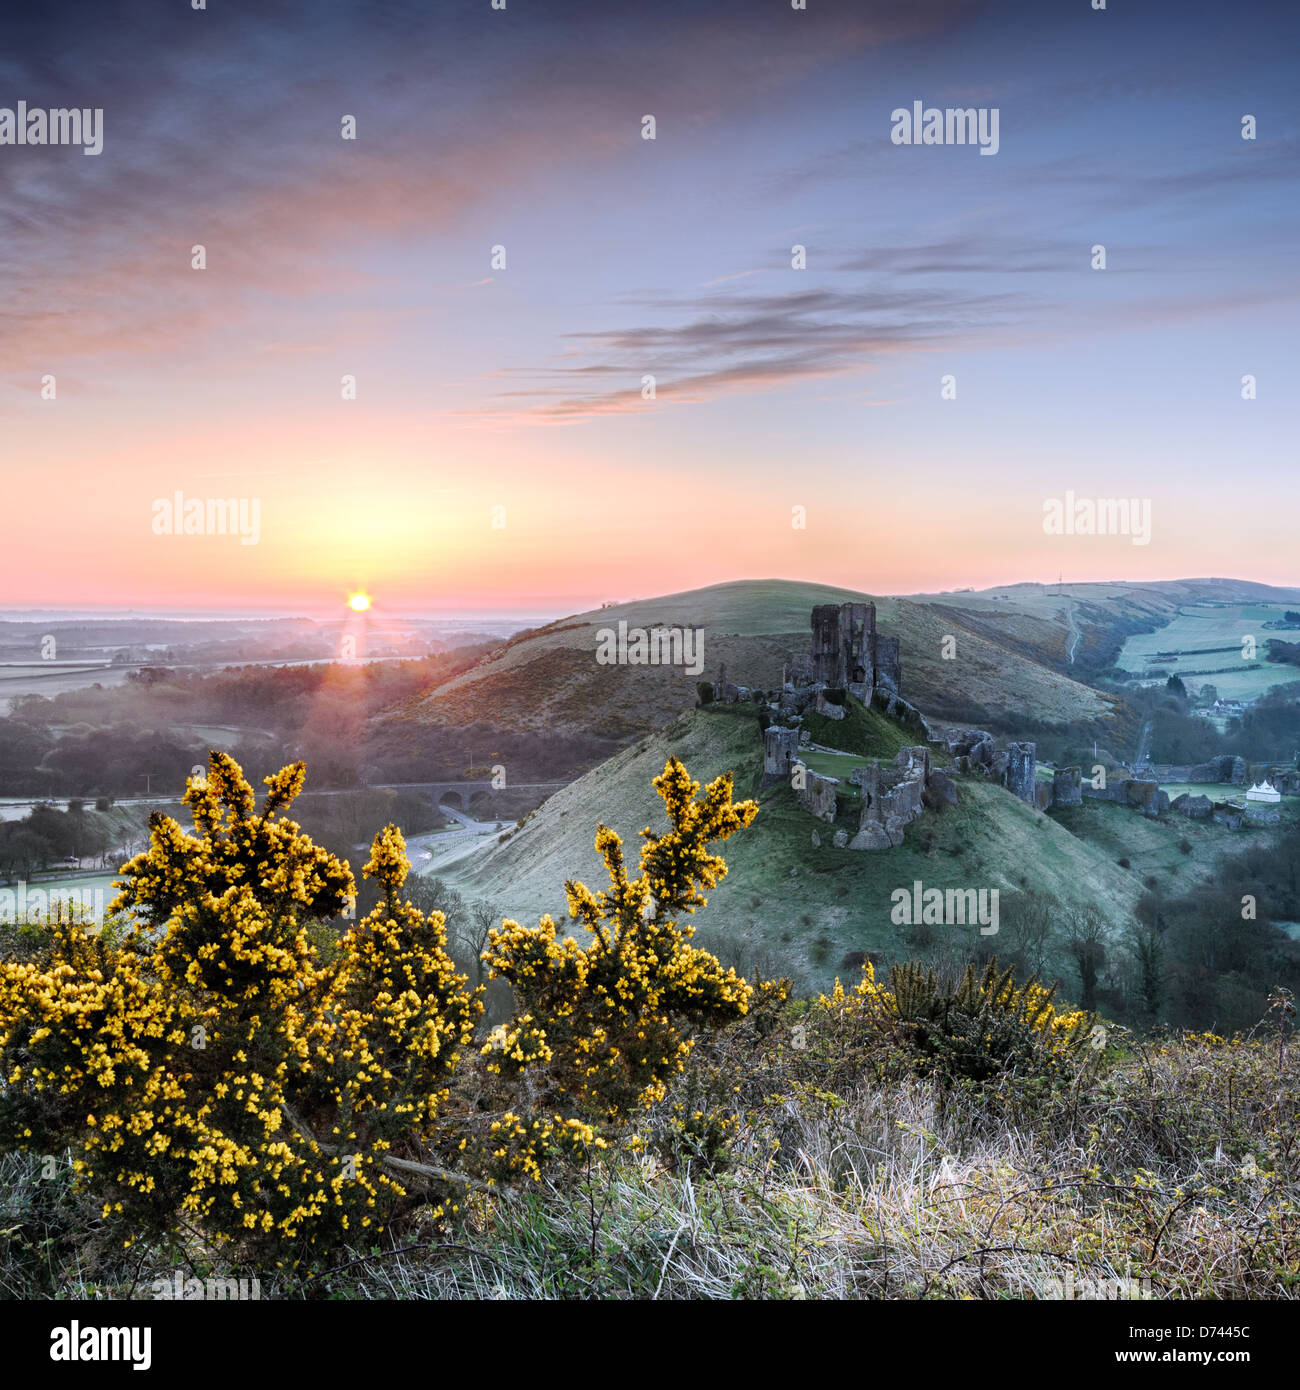 Sunrise overlooking the ruins of Corfe Castle on the Isle of Purpeck in Dorset. - Stock Image